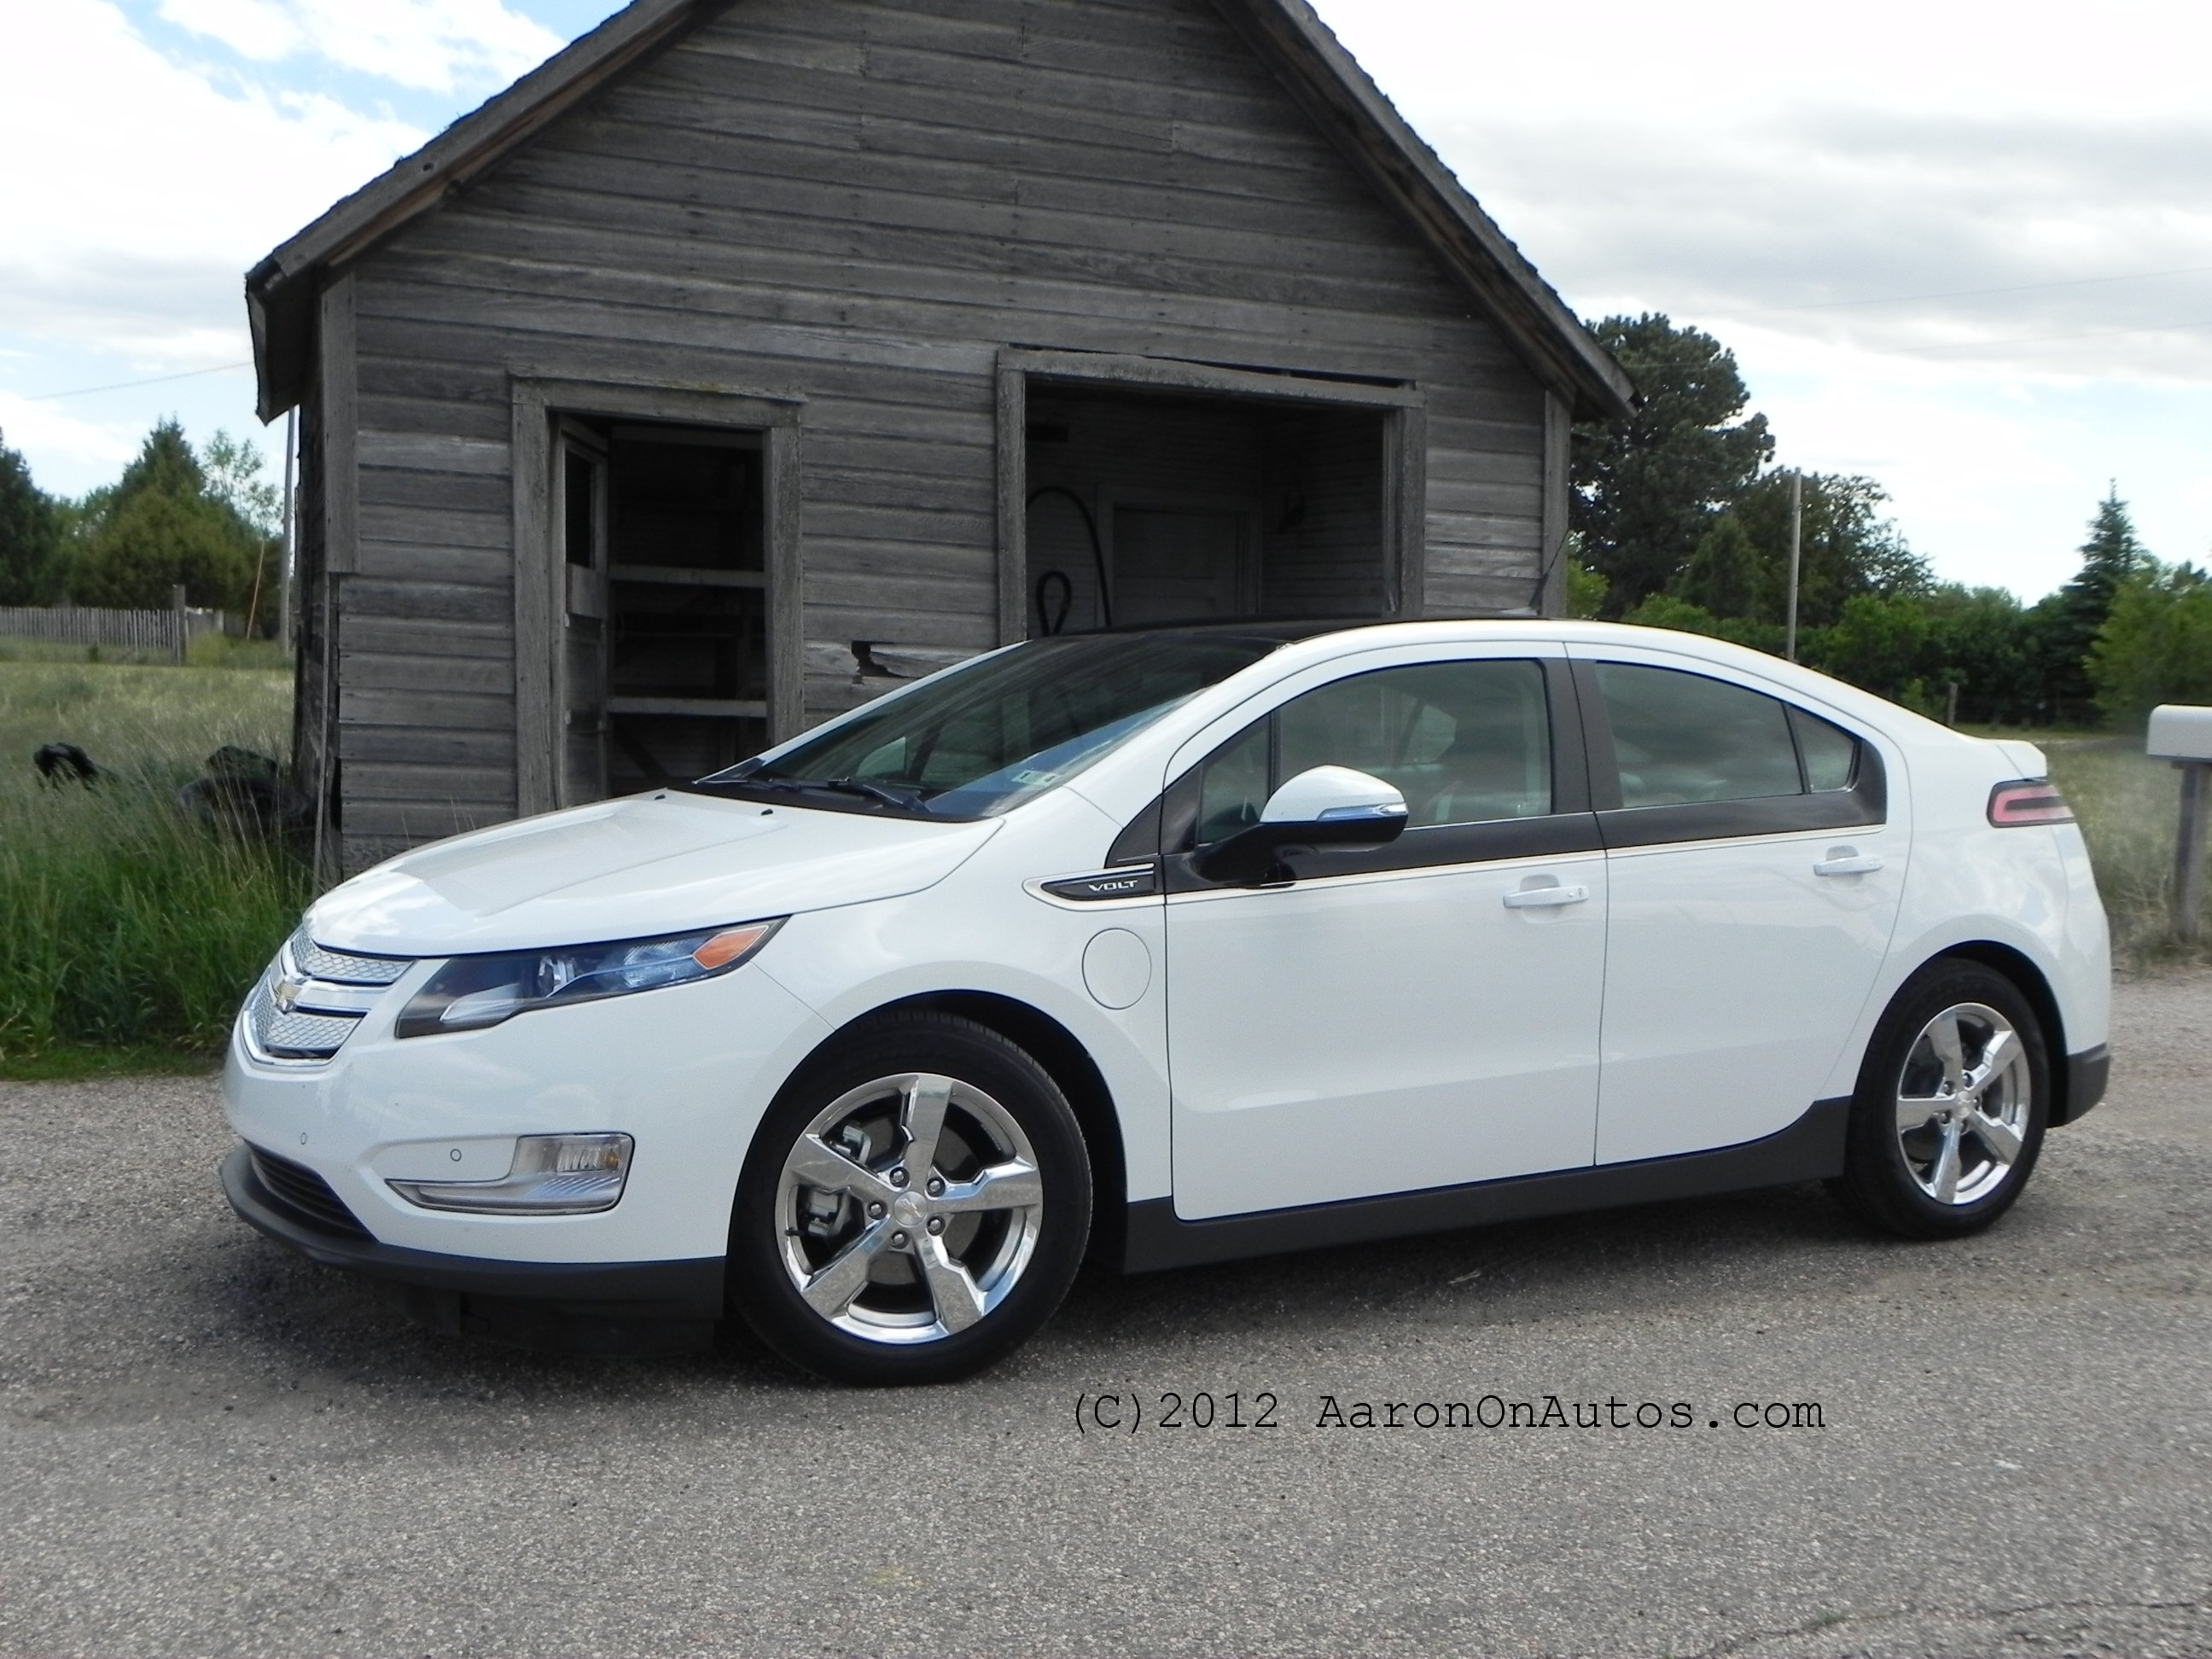 The 2012 Chevrolet Volt